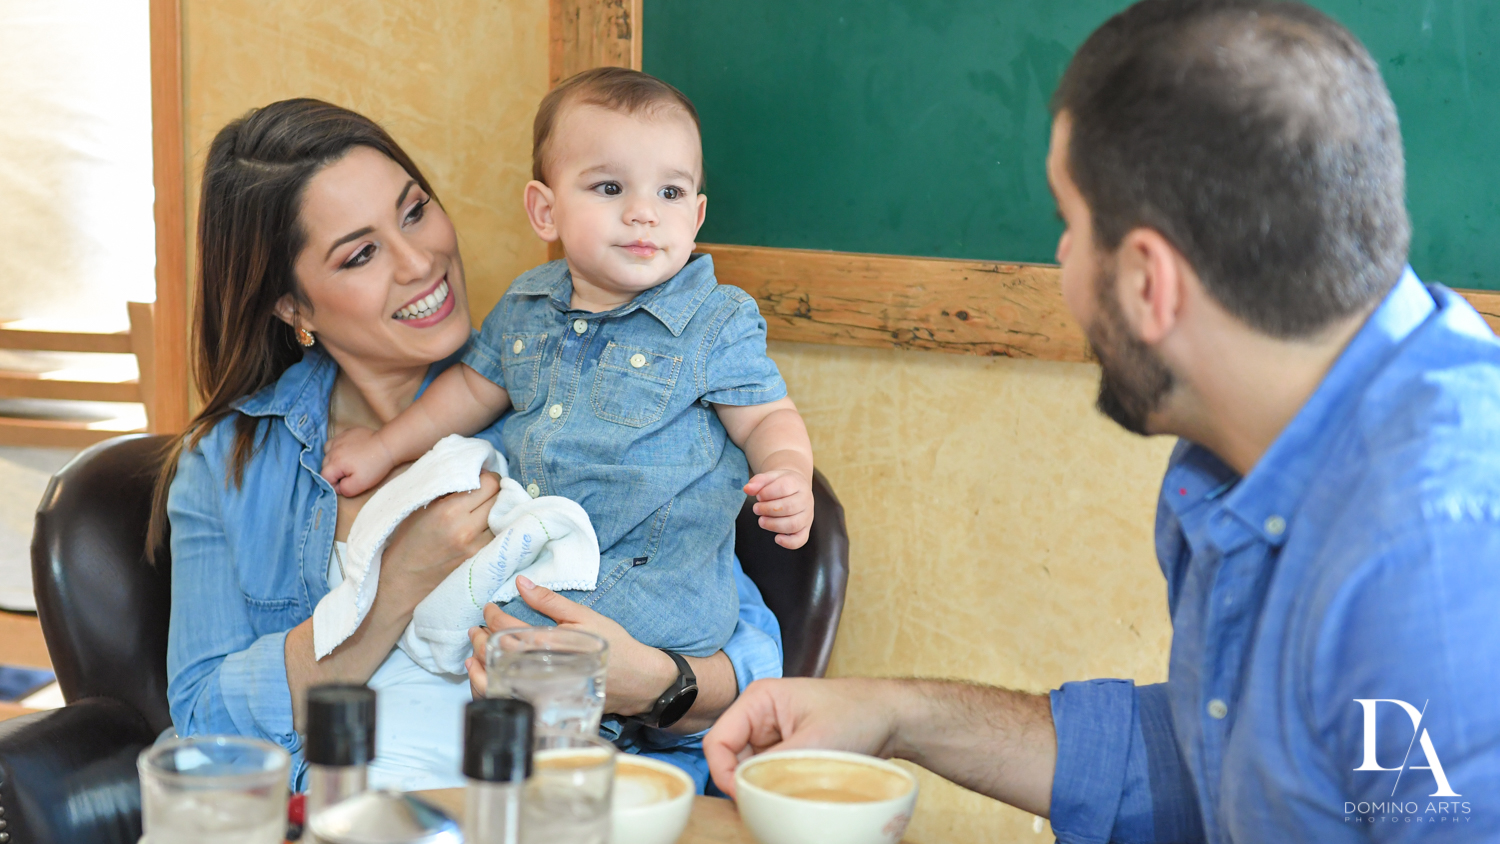 baby at restaurant for Urban baby Photo Session in Coral Gables by Domino Arts Photography